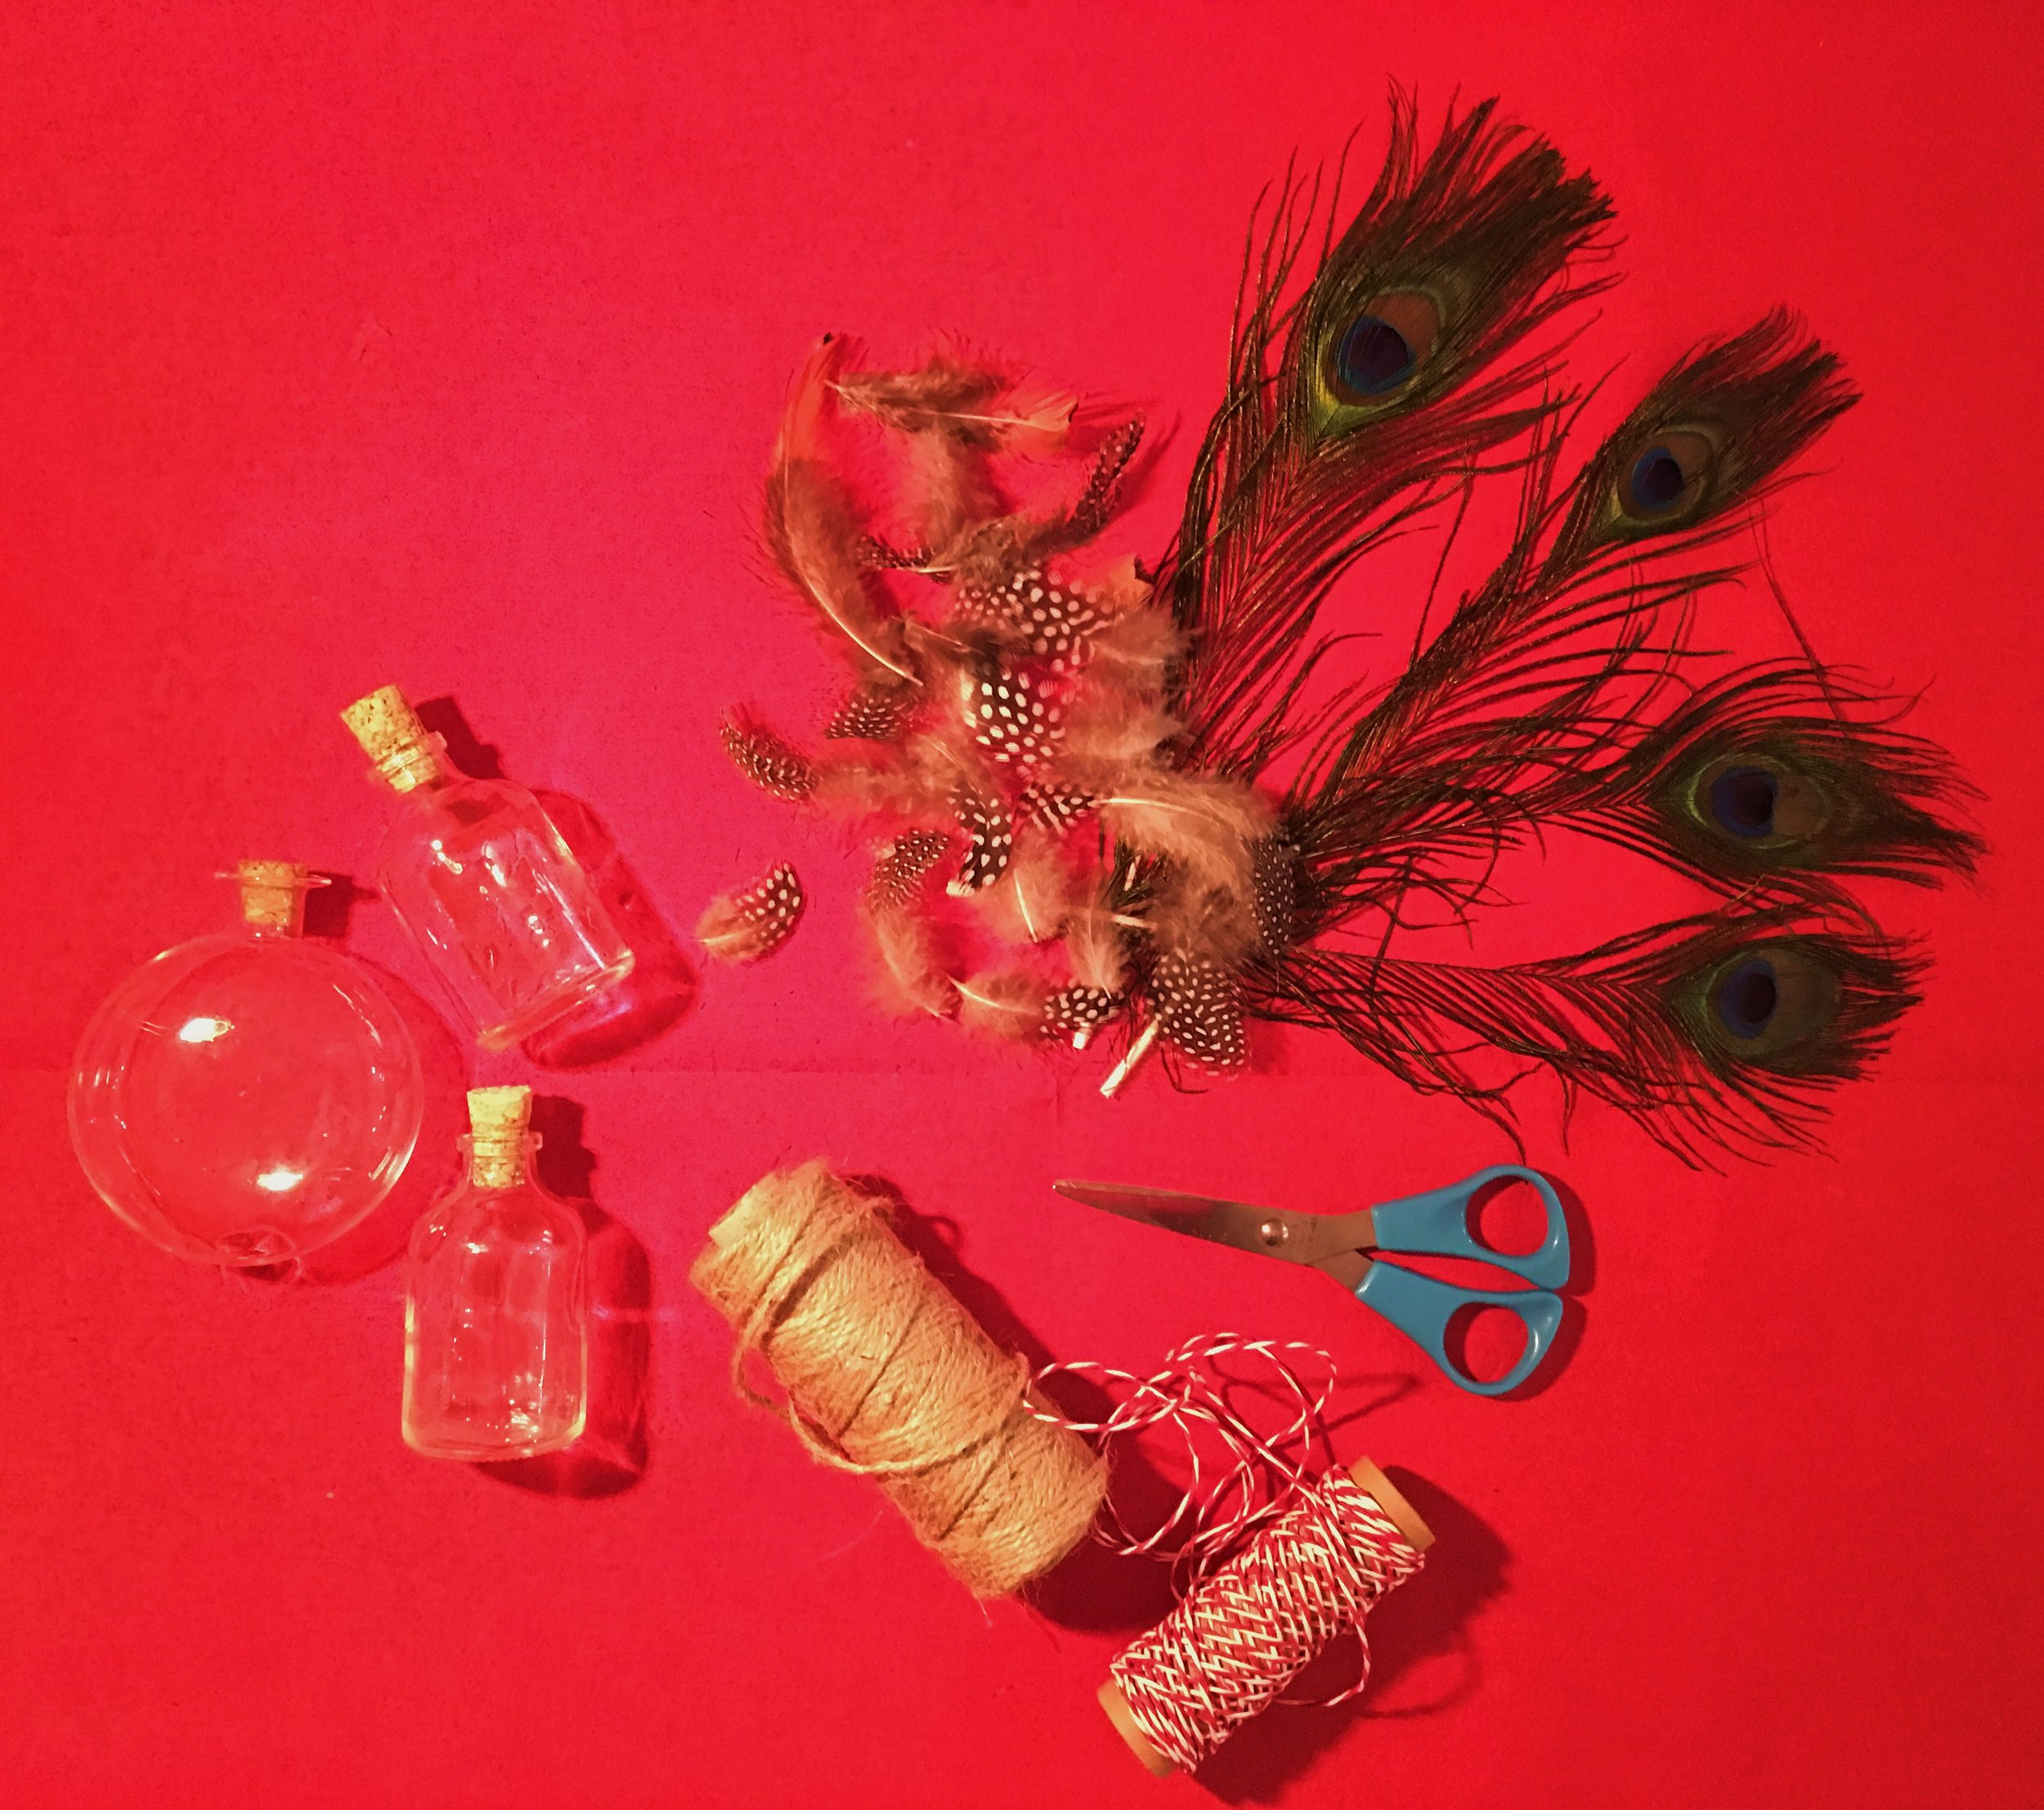 You will need: 50ml glass bottles with cork lids, feathers, scissors, twine/string.